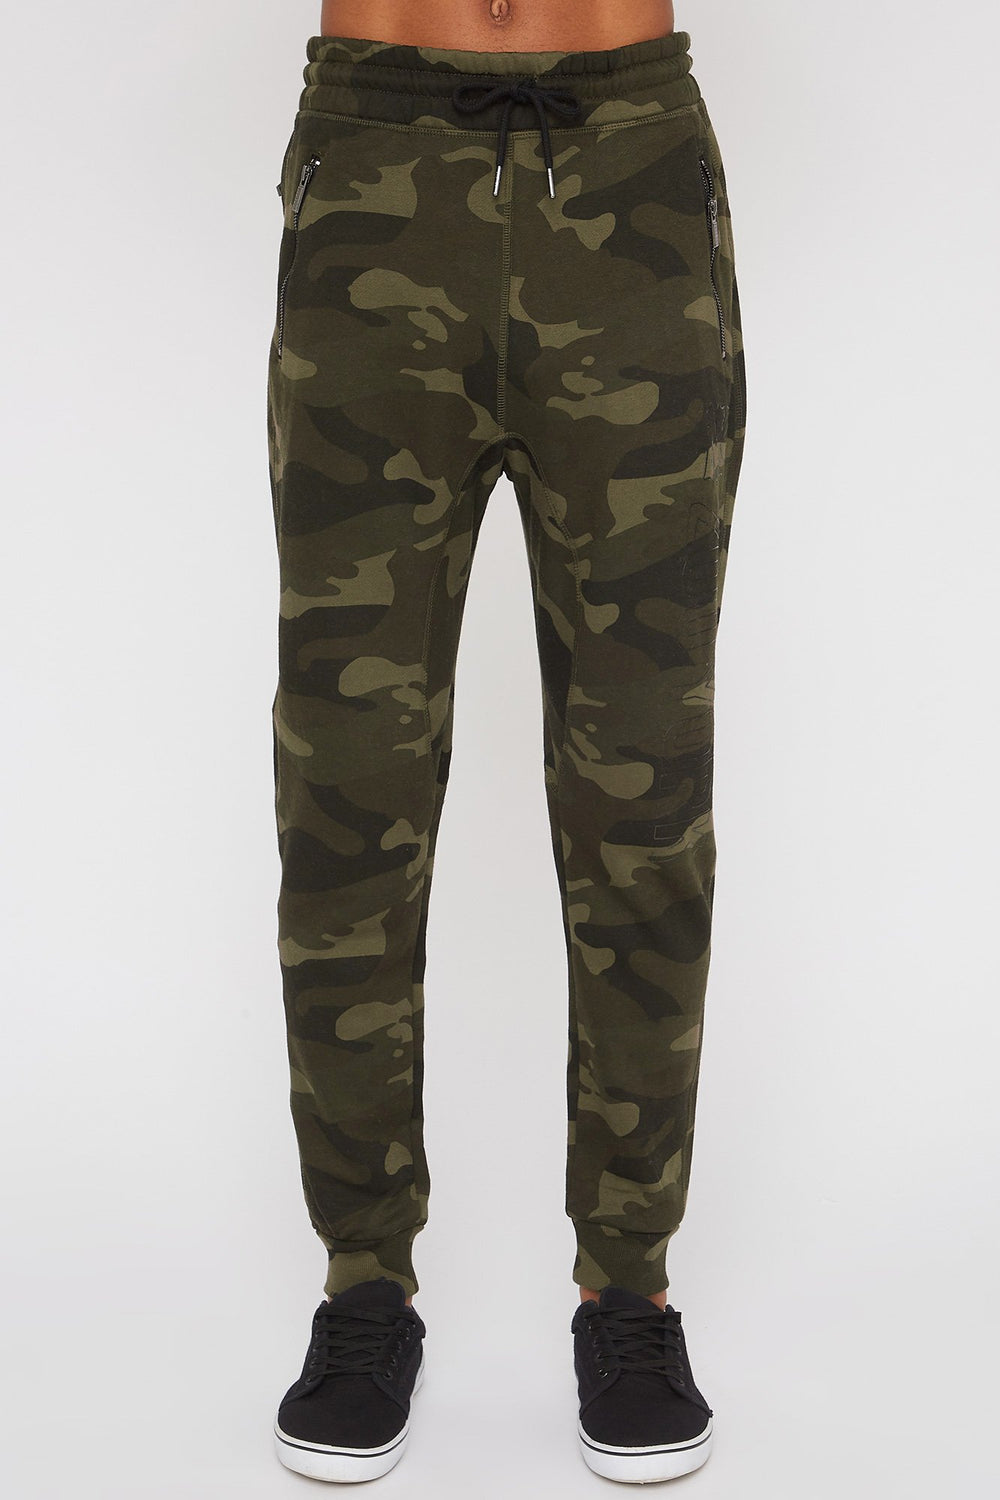 Jogger Camouflage Zoo York Homme Camoufle